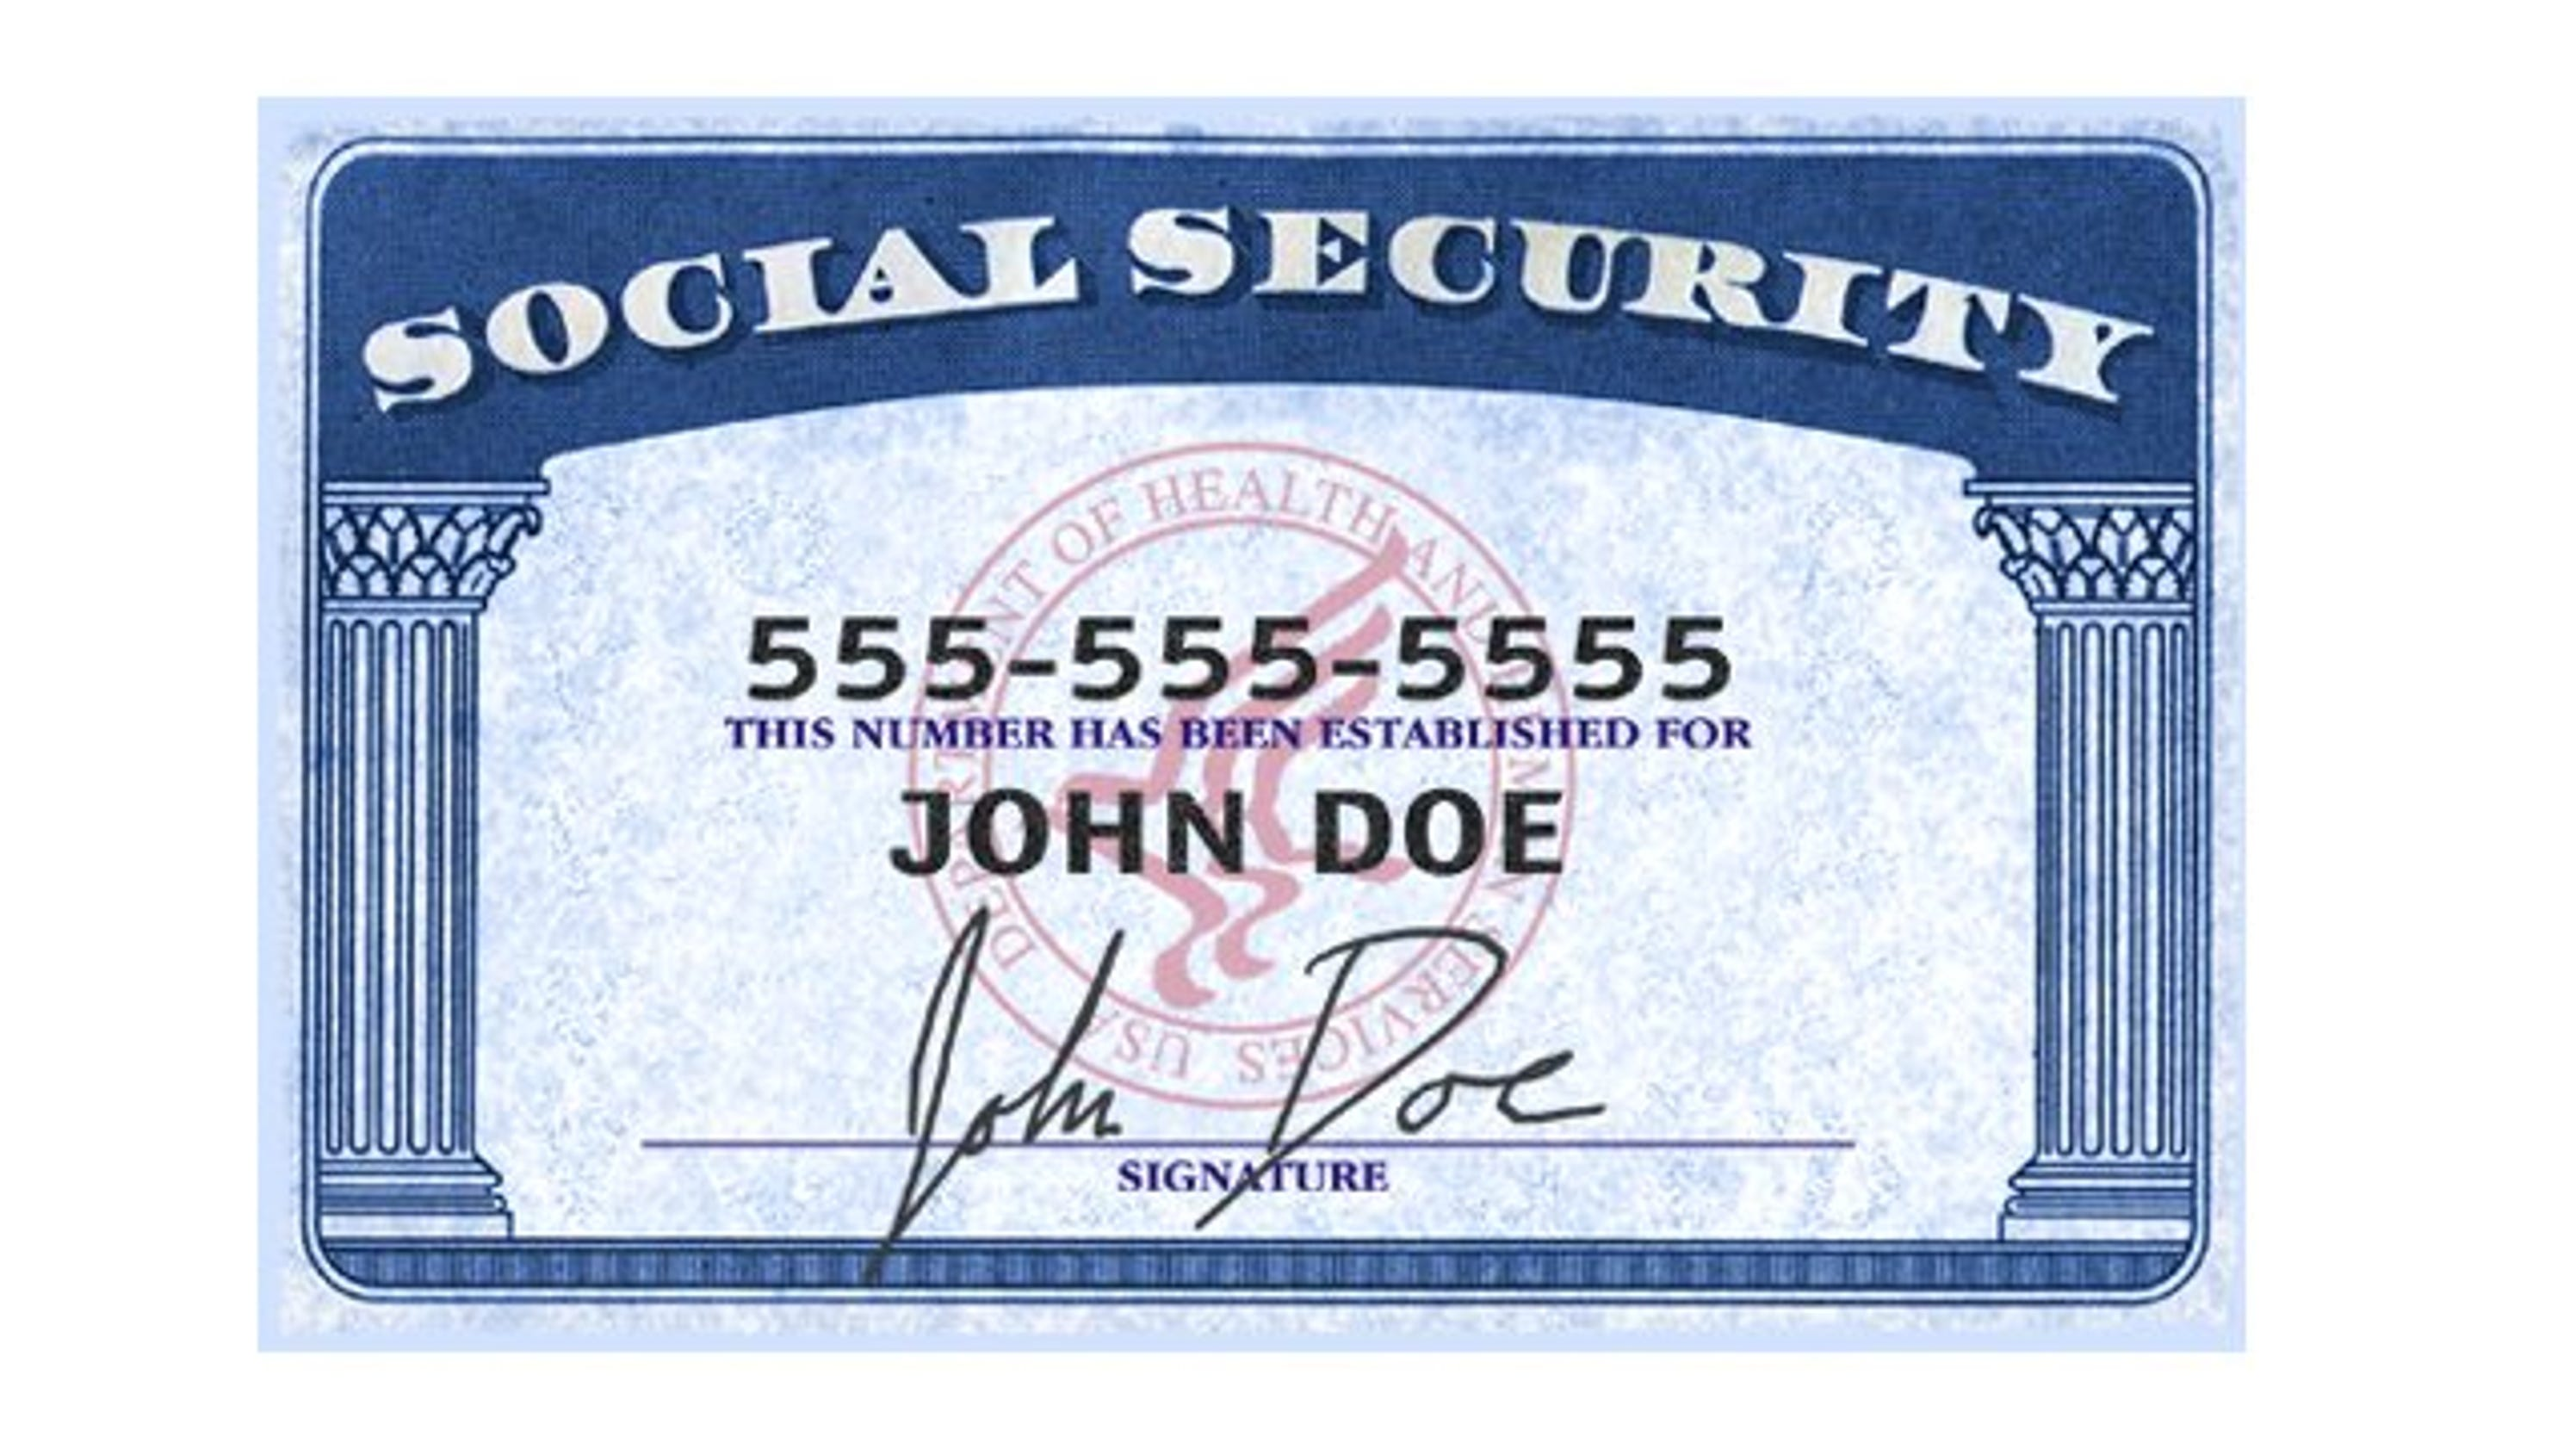 Social security has new online option for lost tax form falaconquin